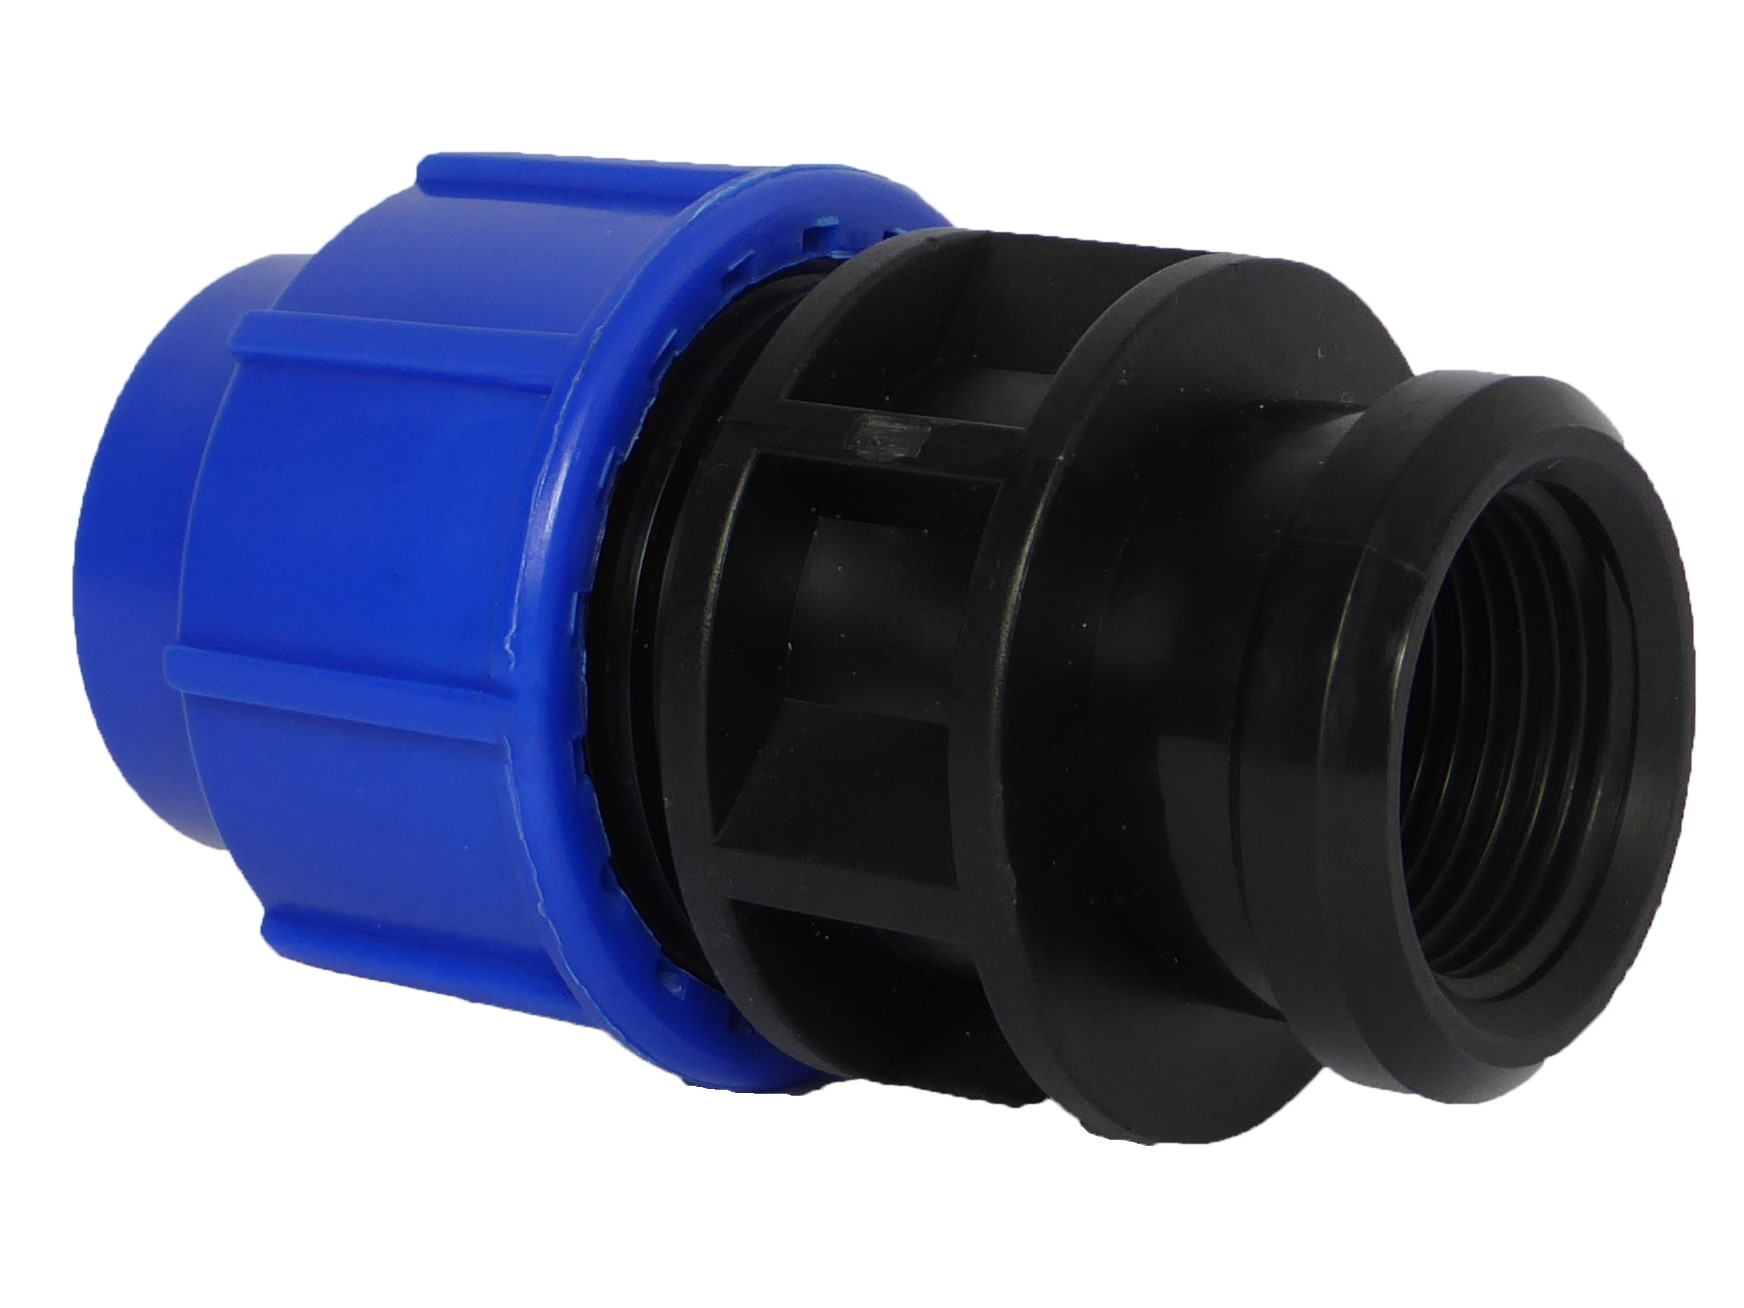 Metric PP Compression Female BSP Adaptor